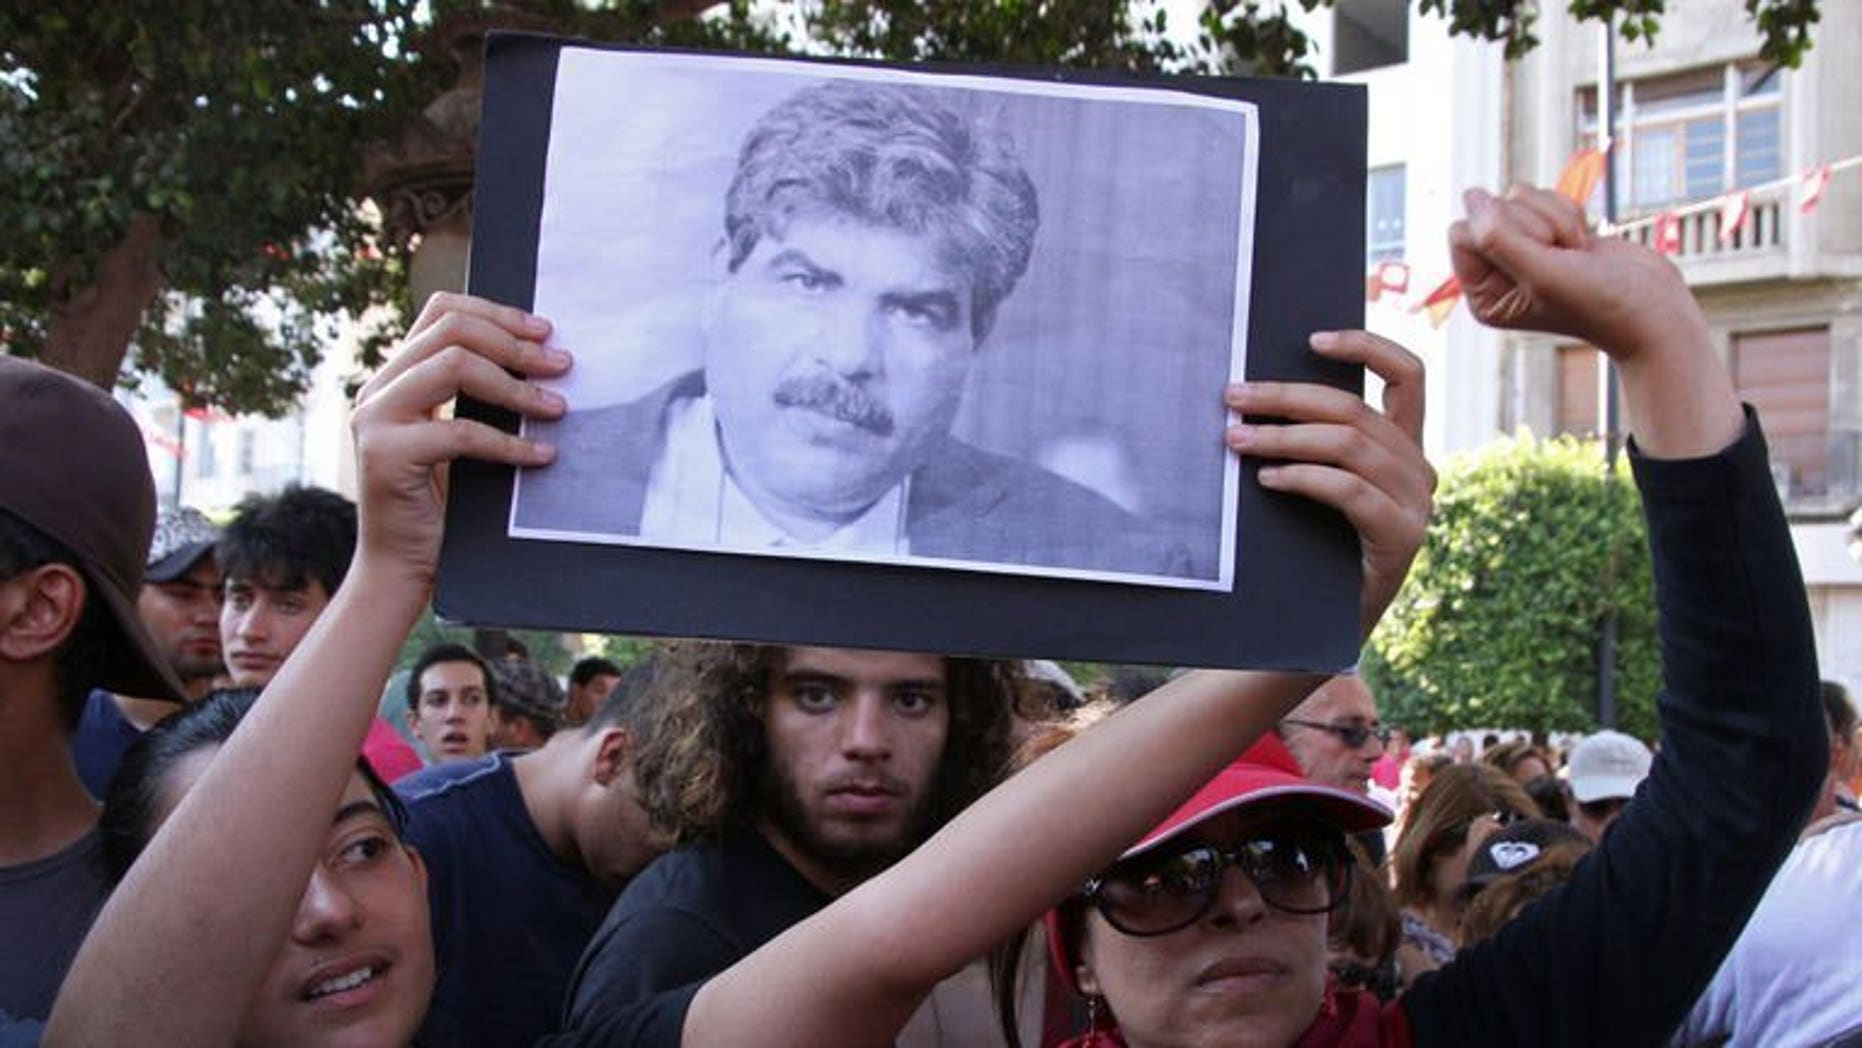 Tunisians hold a portrait of slain opposition politician Mohamed Brahmi on July 25, 2013. Tunisian Interior Minister Lotfi Ben Jeddou has said that Brahmi was killed with the same weapon as fellow opposition figure Chokri Belaid.